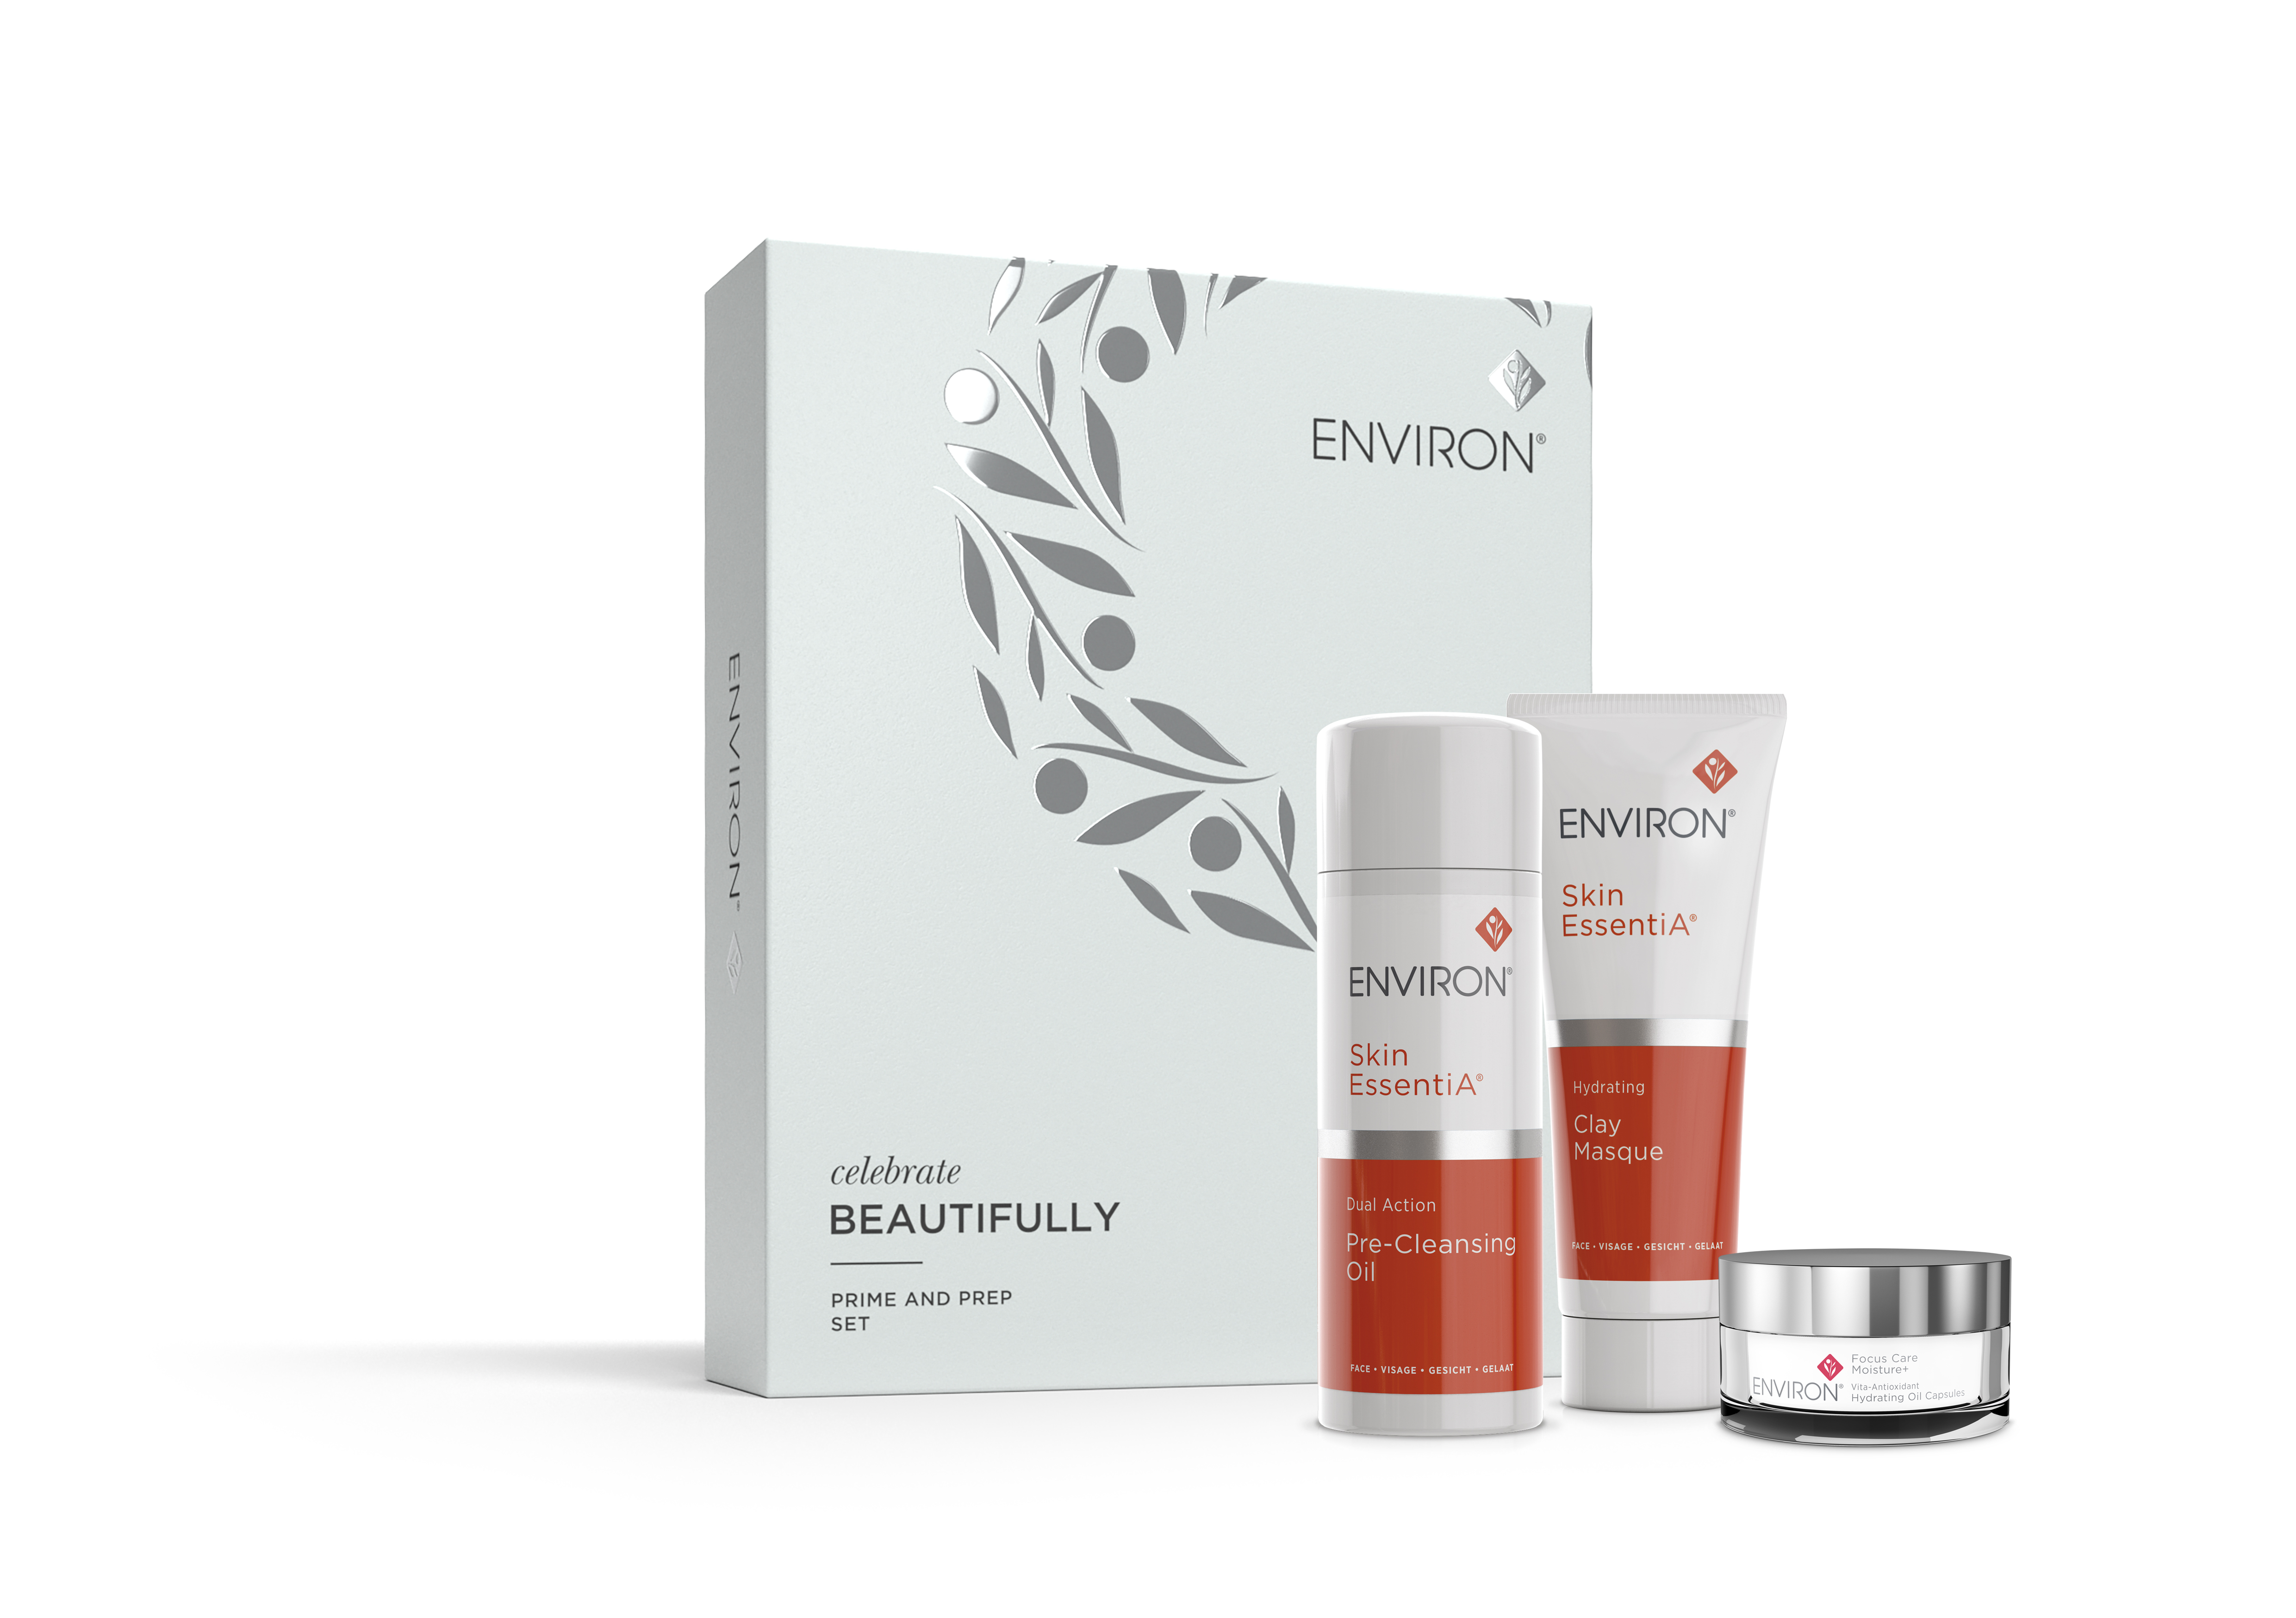 Environ Prime and Perfect